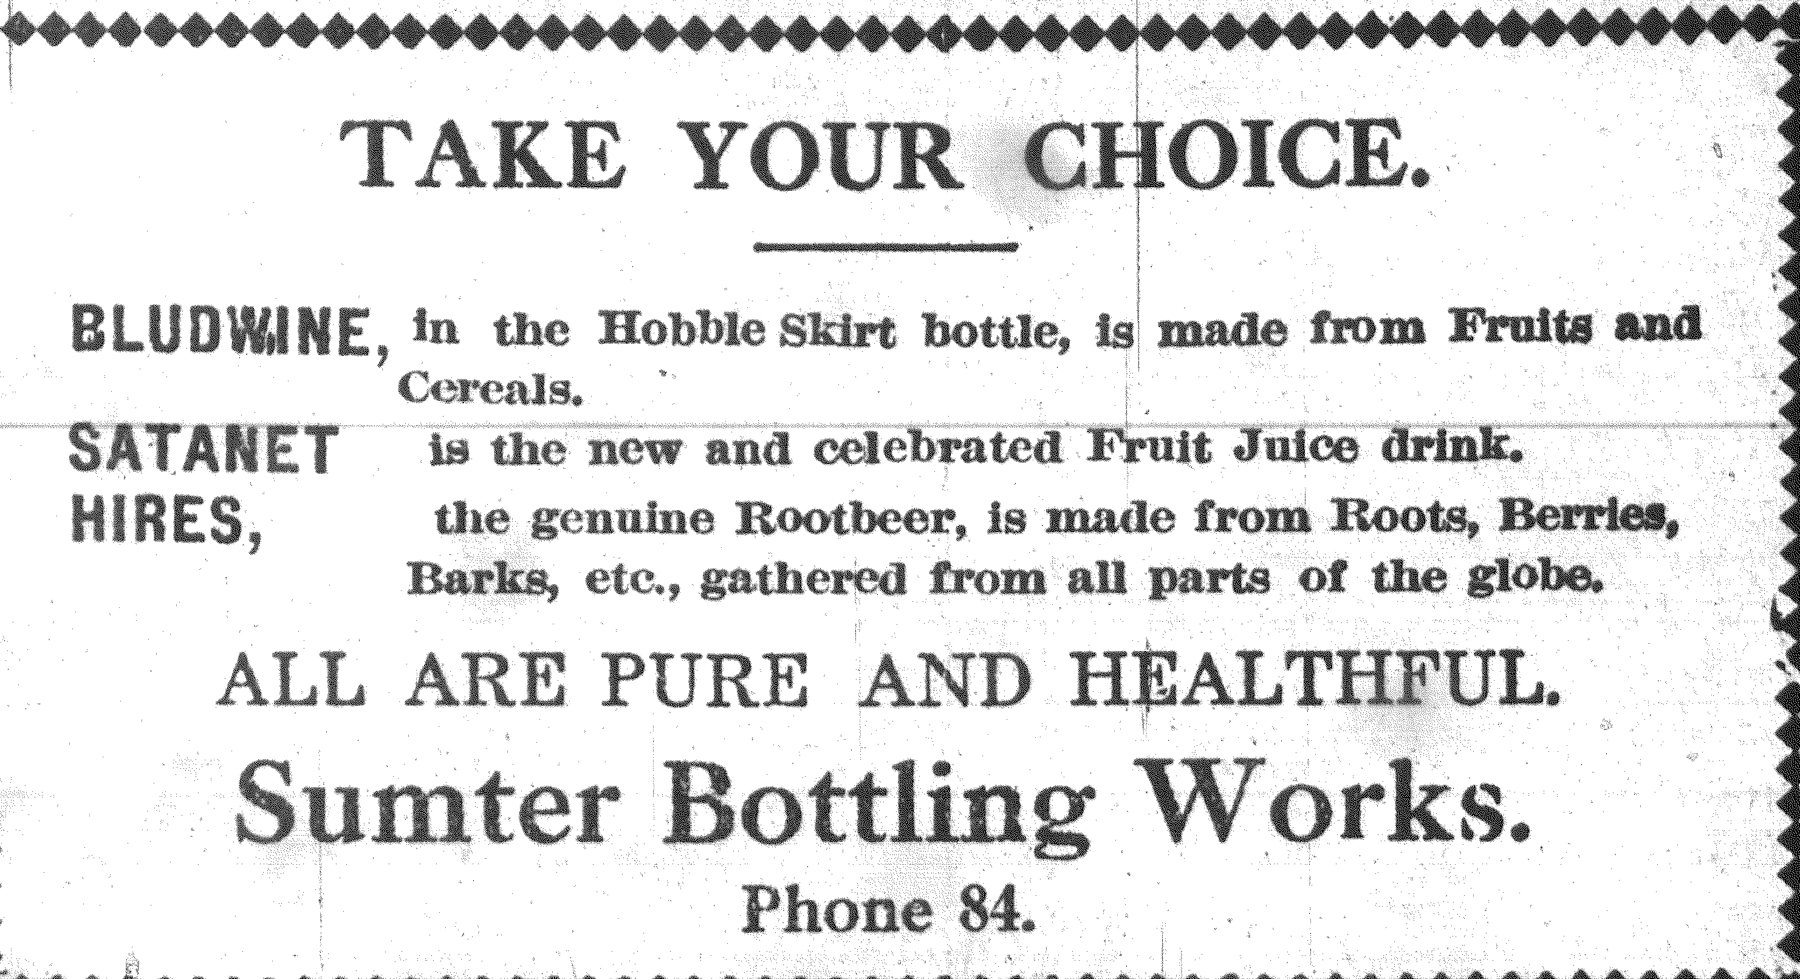 This ad was printed in the Item in July 1916, touting the healthy drinks made by the company.